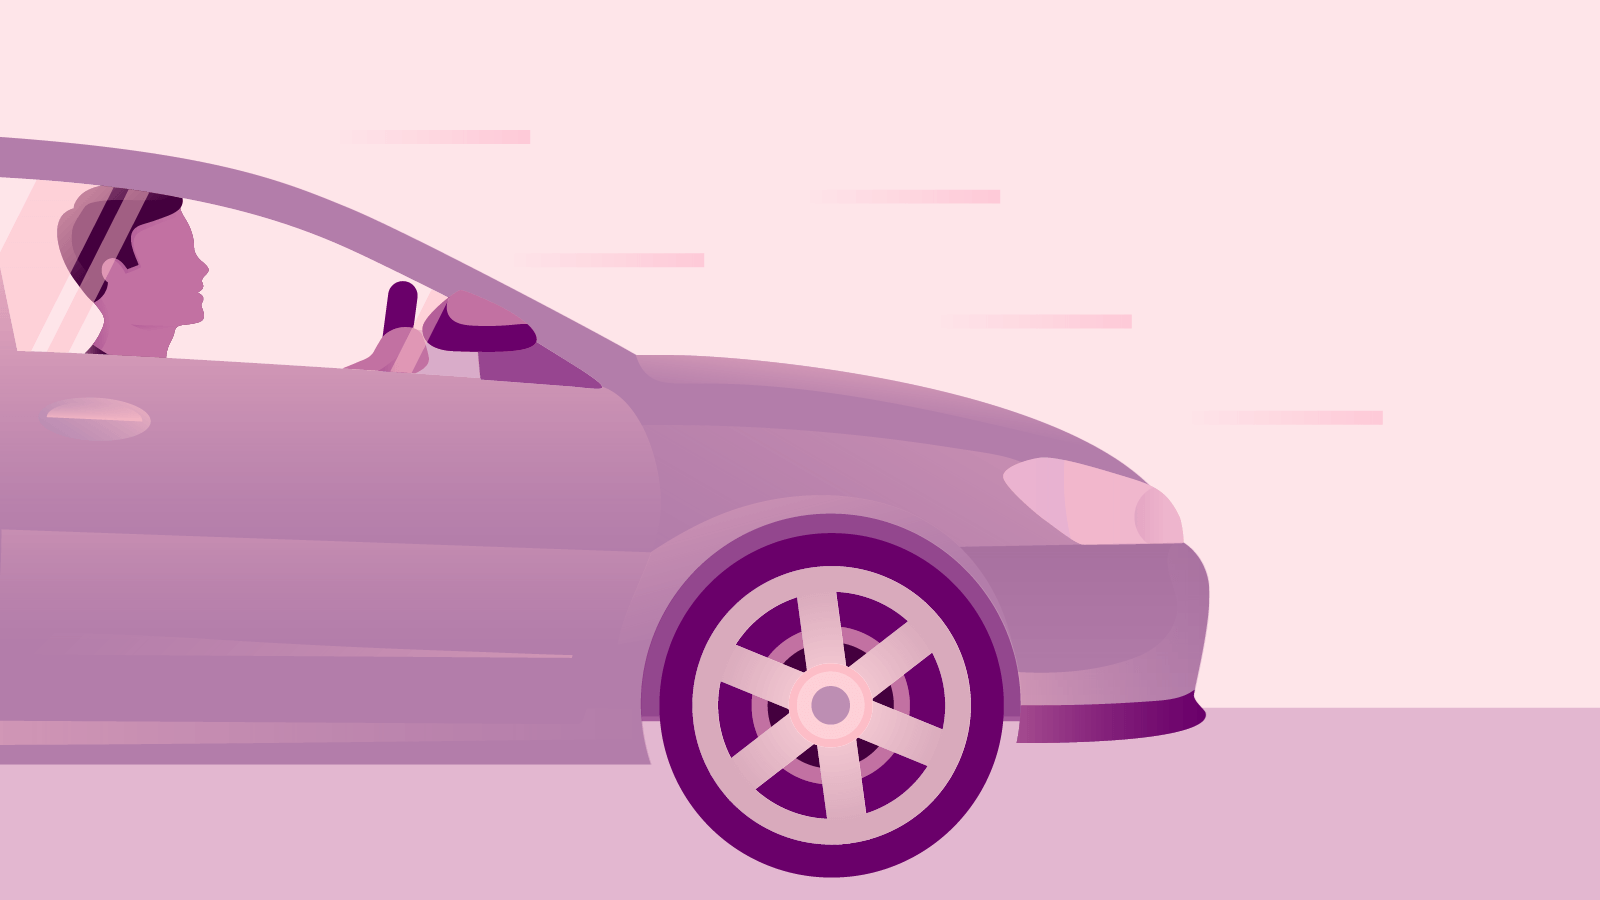 Illustration of a person driving a car